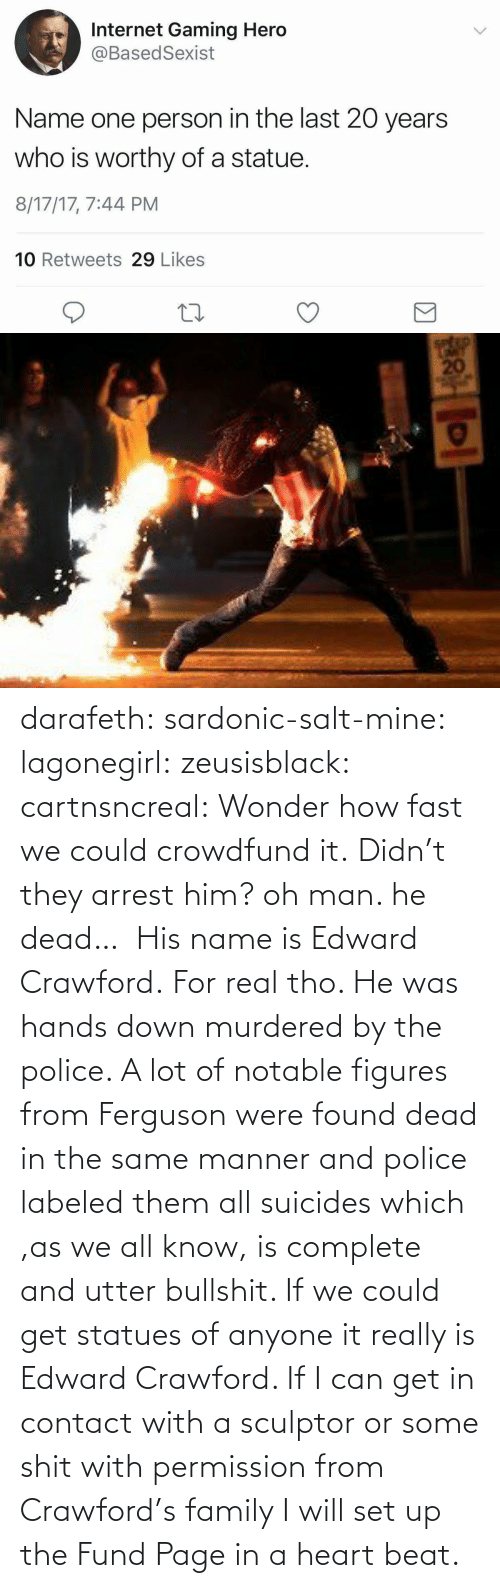 beat: darafeth: sardonic-salt-mine:  lagonegirl:  zeusisblack:  cartnsncreal:   Wonder how fast we could crowdfund it.    Didn't they arrest him?  oh man. he dead…   His name is Edward Crawford.   For real tho. He was hands down murdered by the police. A lot of notable figures from Ferguson were found dead in the same manner and police labeled them all suicides which ,as we all know, is complete and utter bullshit.  If we could get statues of anyone it really is Edward Crawford. If I can get in contact with a sculptor or some shit with permission from Crawford's family I will set up the Fund Page in a heart beat.